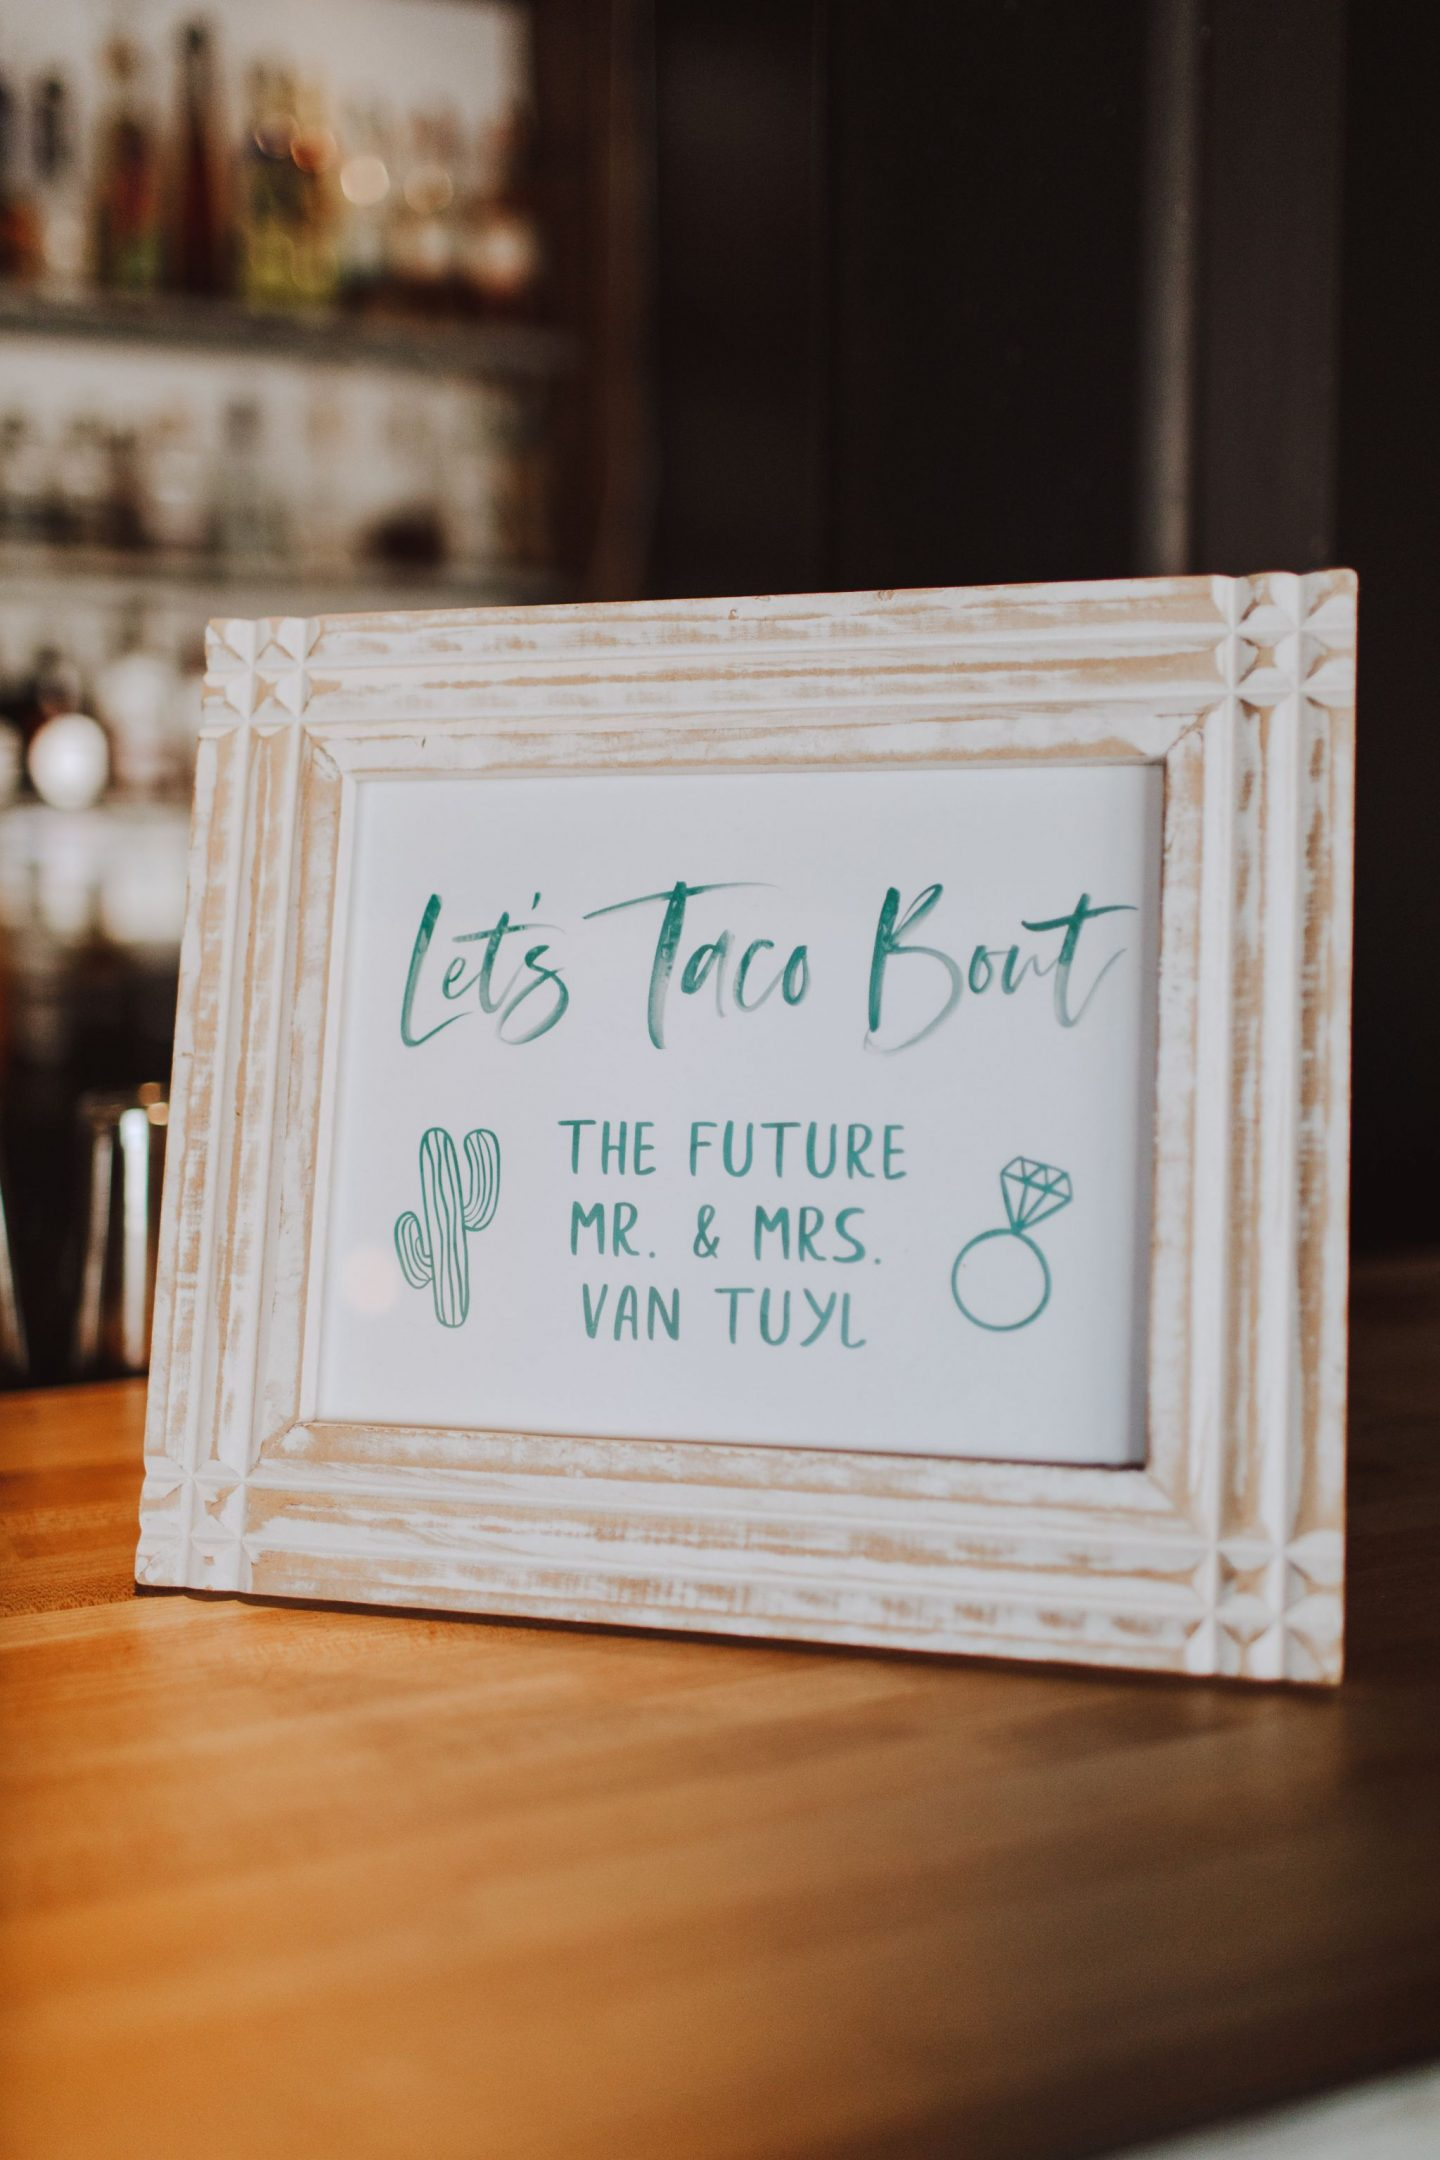 Wedding Series: Let's Taco Bout The Future Mr. & Mrs. Van Tuyl